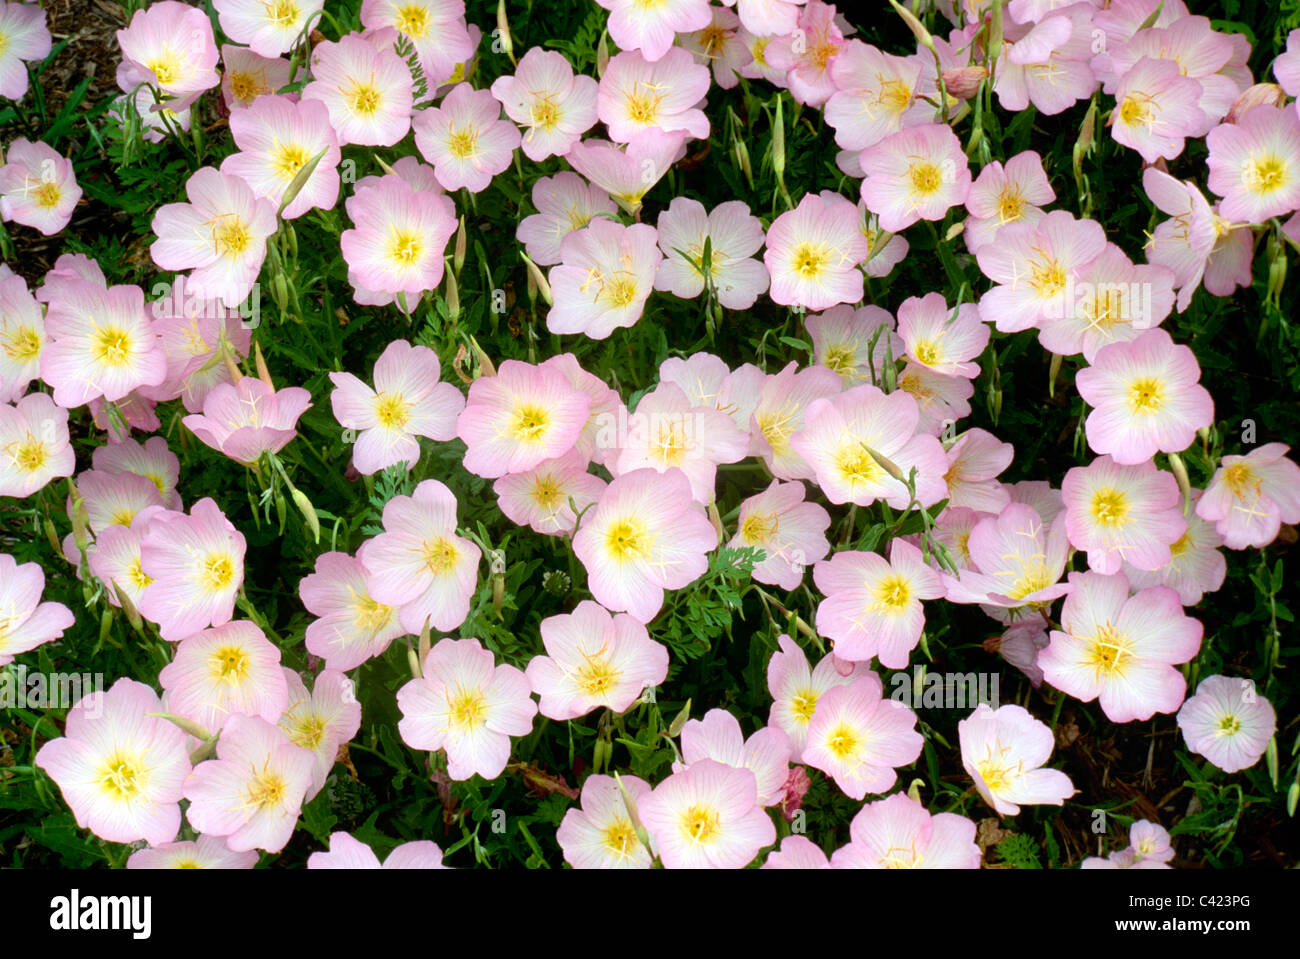 Many pink flowers blooming in early Spring - Evening primrose (Oenothera speciosa) close up, USA - Stock Image